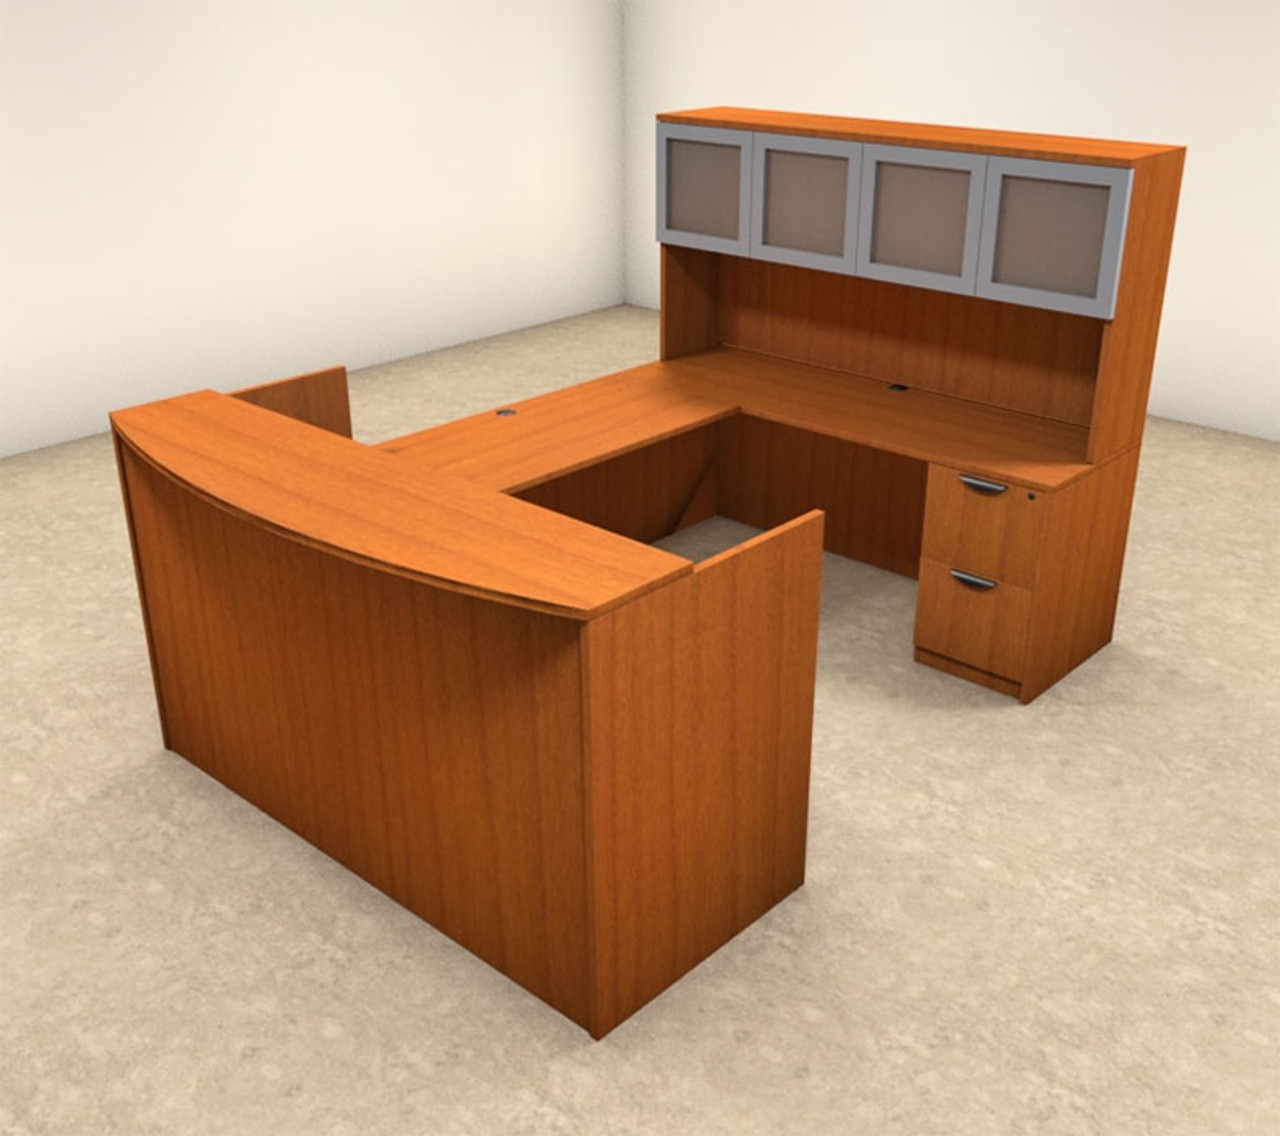 5pc U Shaped Modern Office Reception Desk Set, #OT-SUL-R9